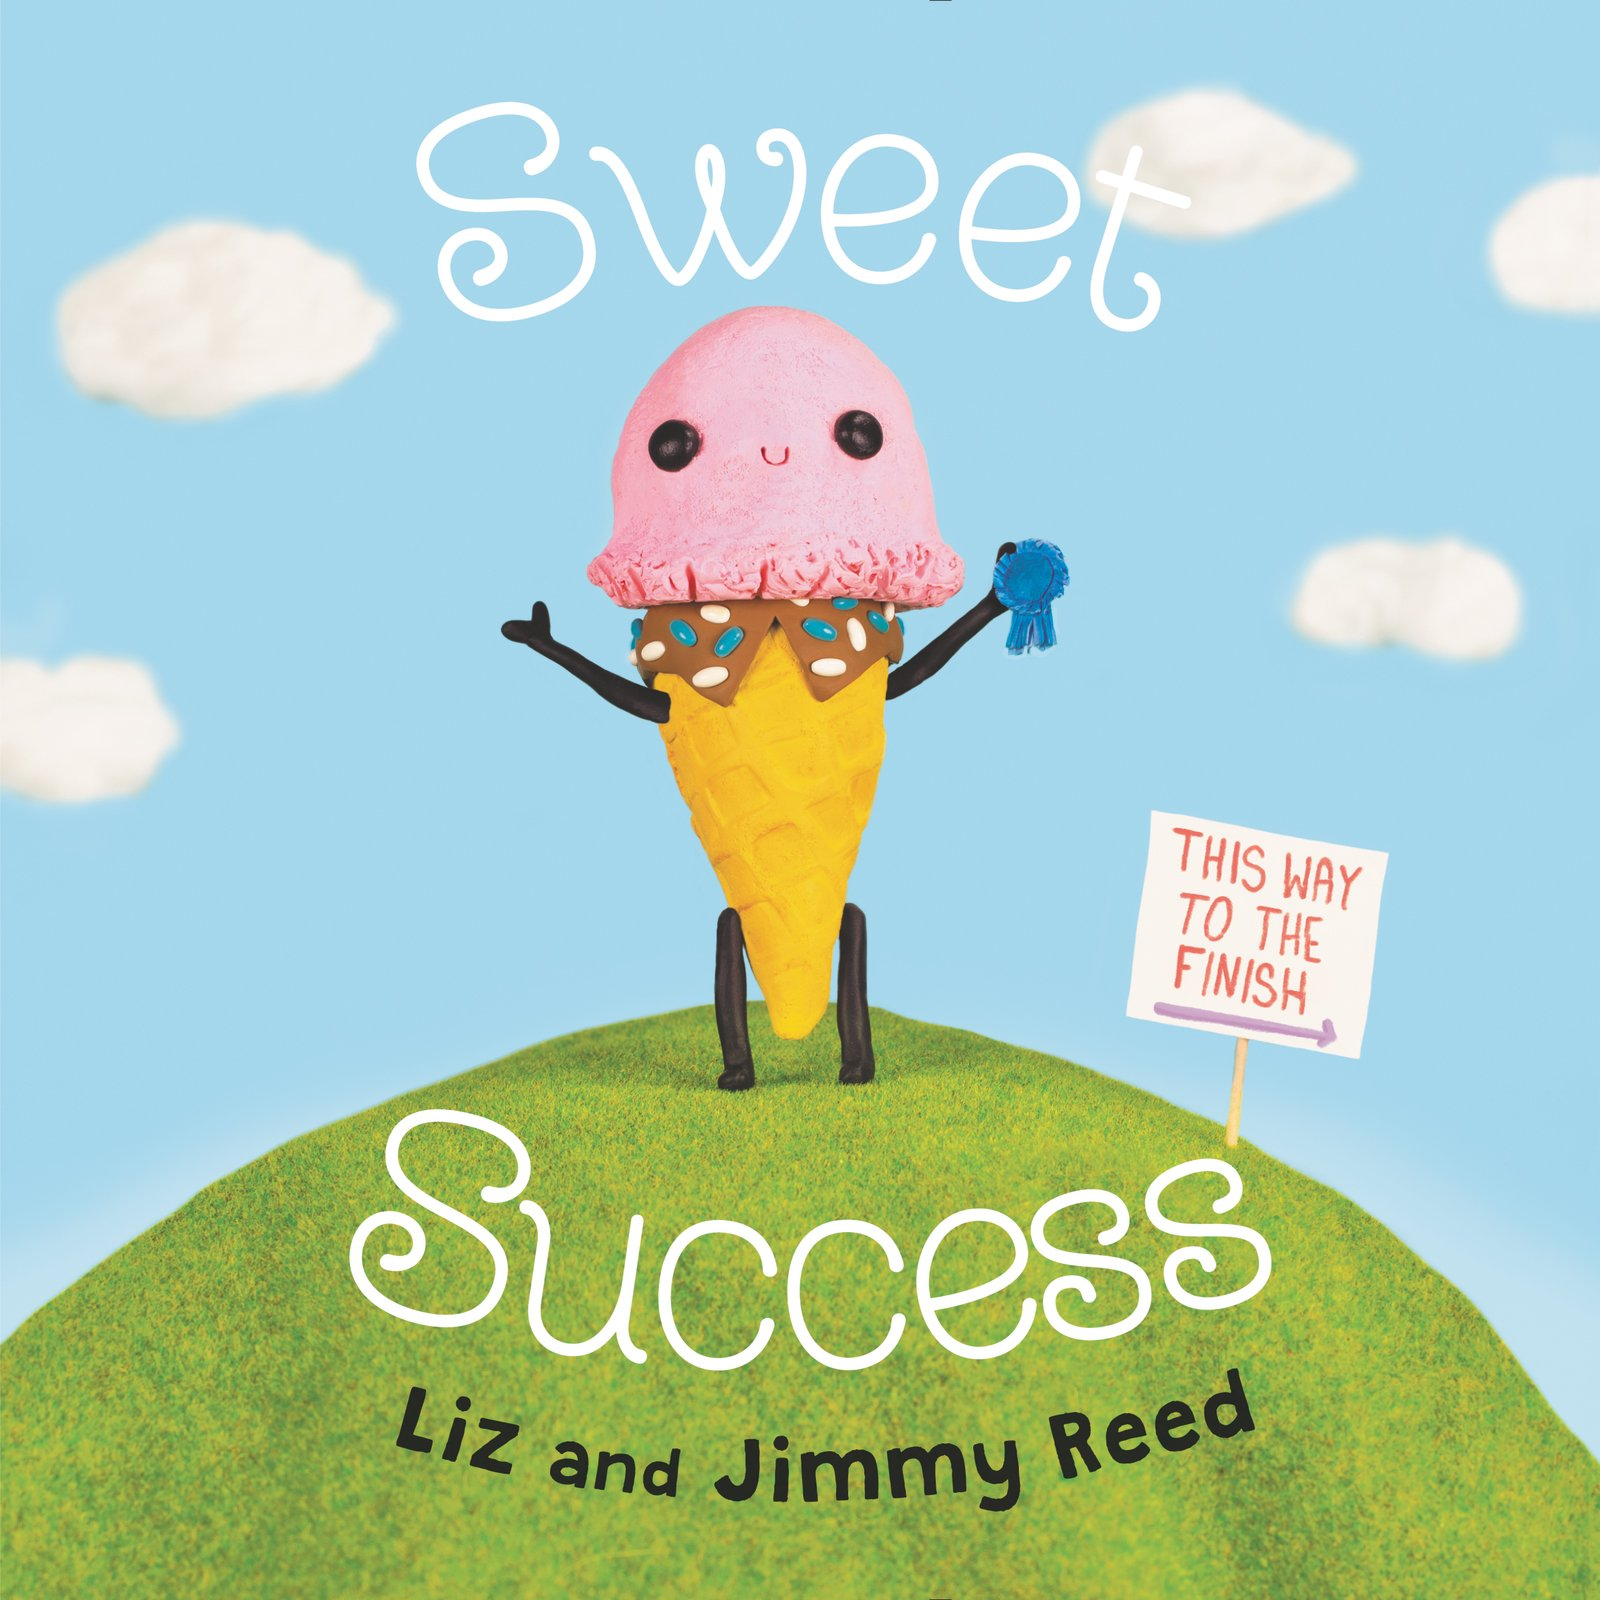 Sweet Success - Nothing makes Scoops happier than starting a sweet new project. She just isn't the best at completing them.When Scoops realizes her gift isn't ready for the Cherry twins' surprise birthday bash, she waffles about whether to go. With the party happening that same day, Scoops quickly throws something together only to find her gift doesn't quite measure up.Will Scoops play it cool and figure something out, or will she have a complete meltdown?Harper Collins, 2018